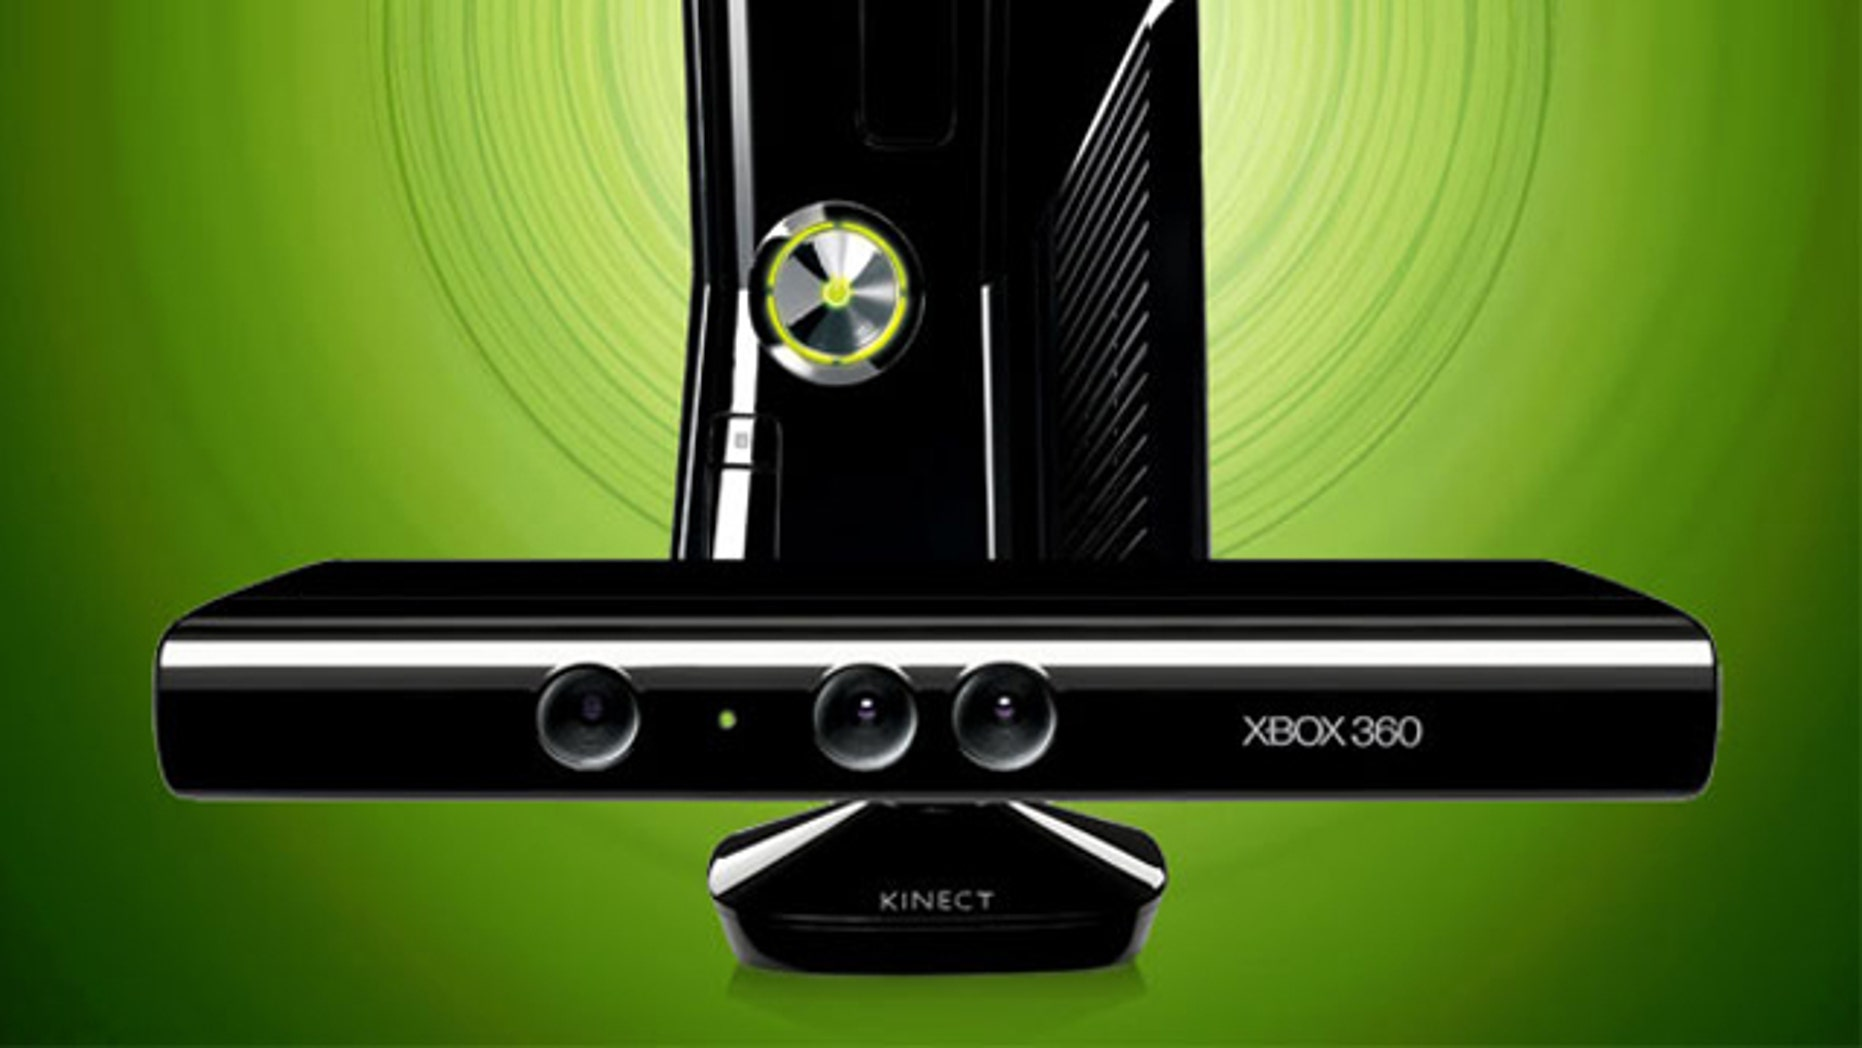 The Microsoft Xbox 360 gaming console, and the new Kinect motion controller.